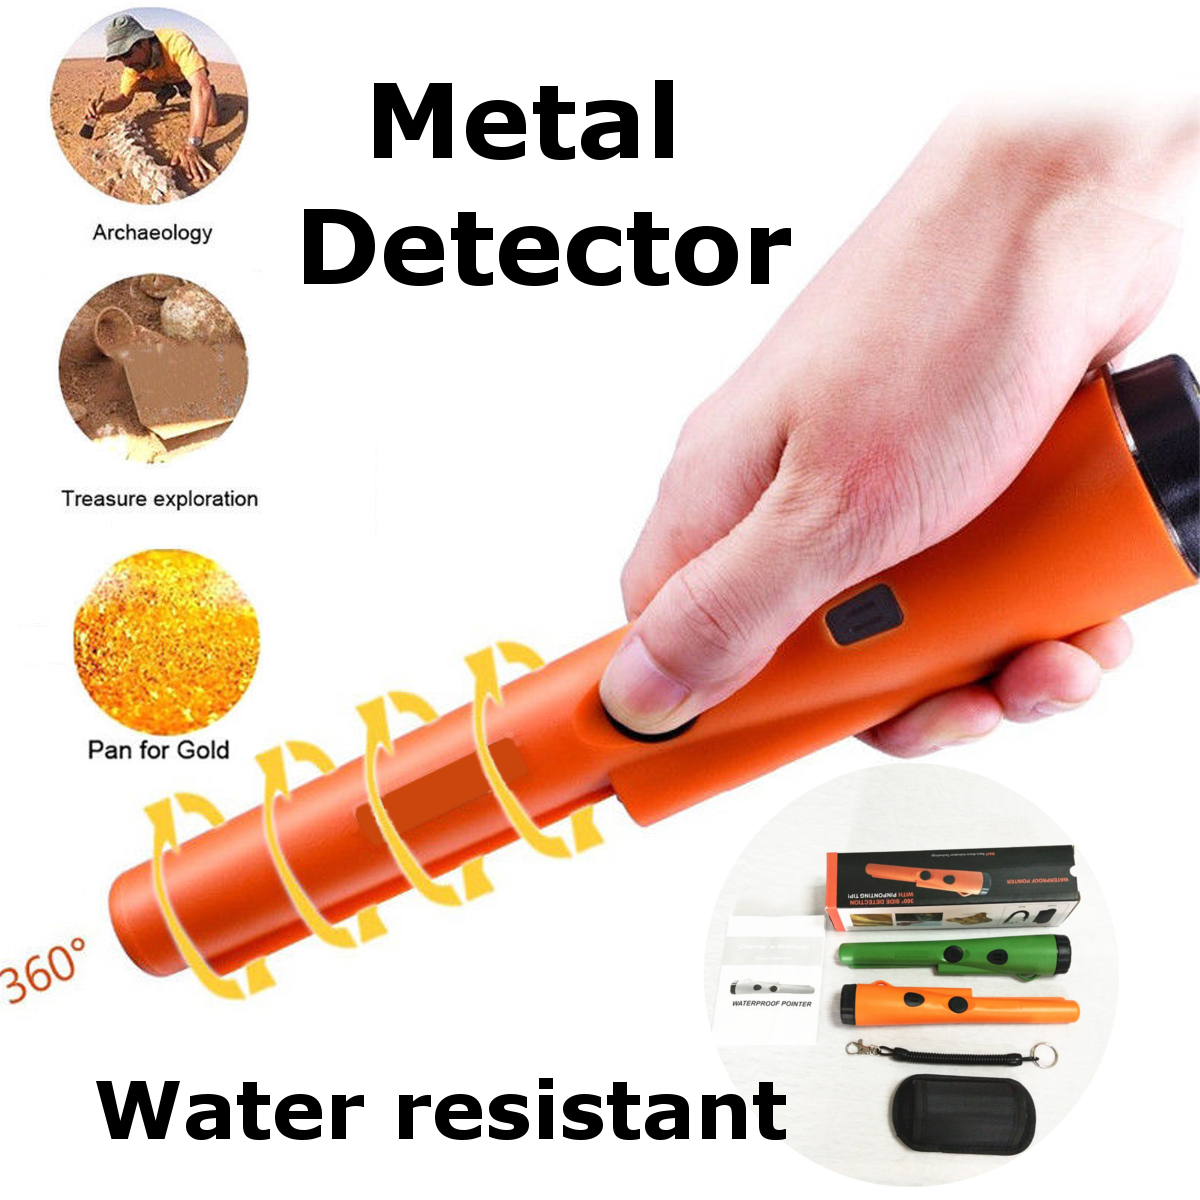 Metal Detector Gold Detector LED Pinpointer Pin Pointer Automatic Treasure Hunting Pinpointer Detector Tester Waterproof underground metal detector pinpointer gold detector treasure hunter buzzer vibrate mini pin pointer led indicators belt holster